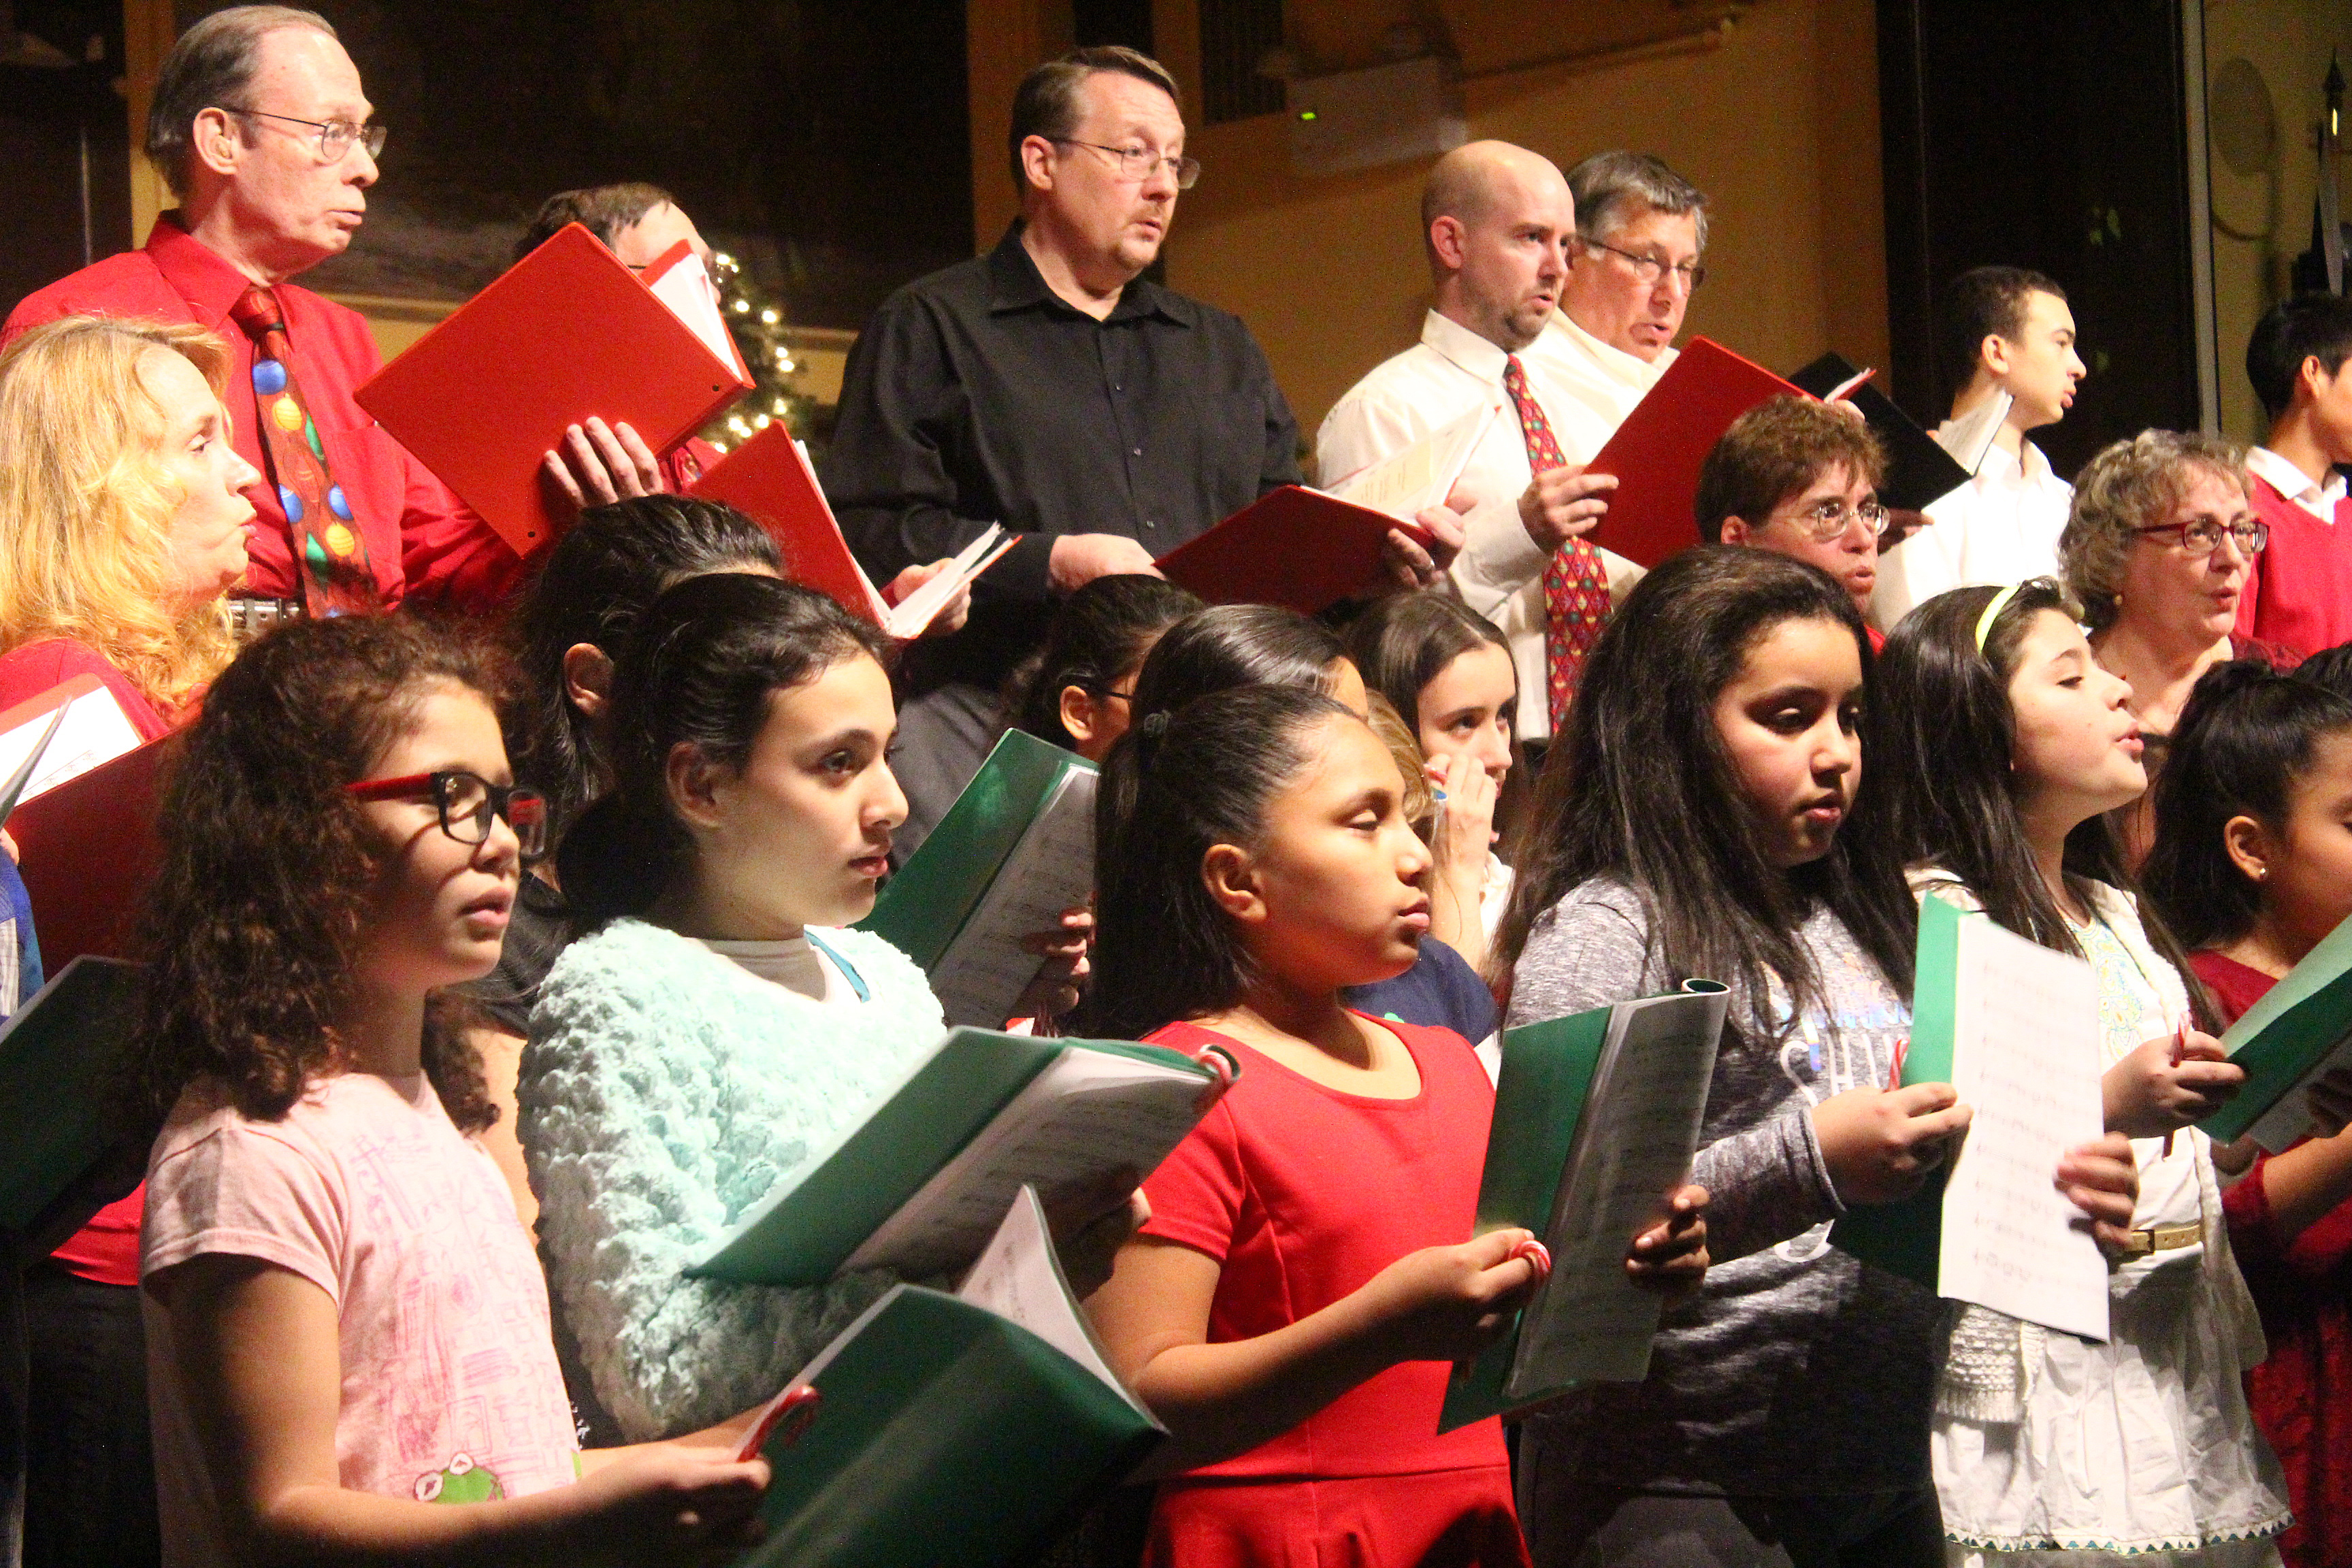 PHOTOS: Ridgewood rings in the holidays in style with a spectacular concert